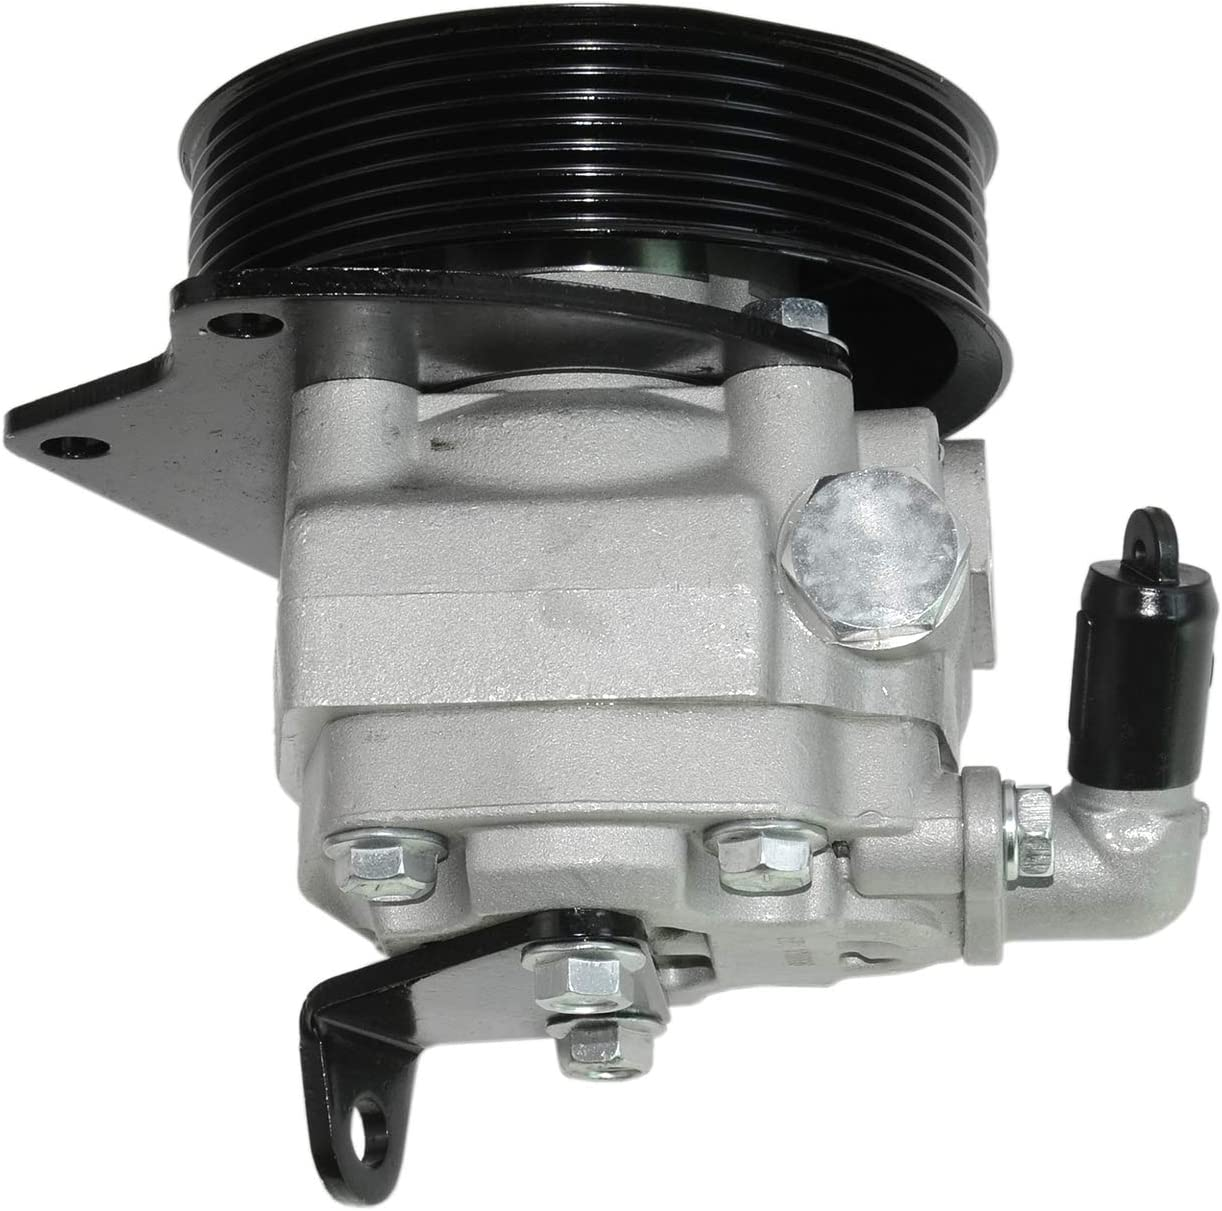 Power Steering Pump QVB500660 For La-nd Rover Discovery LR3 LR4 Range Rover Sport 2.7 3.0 D Td